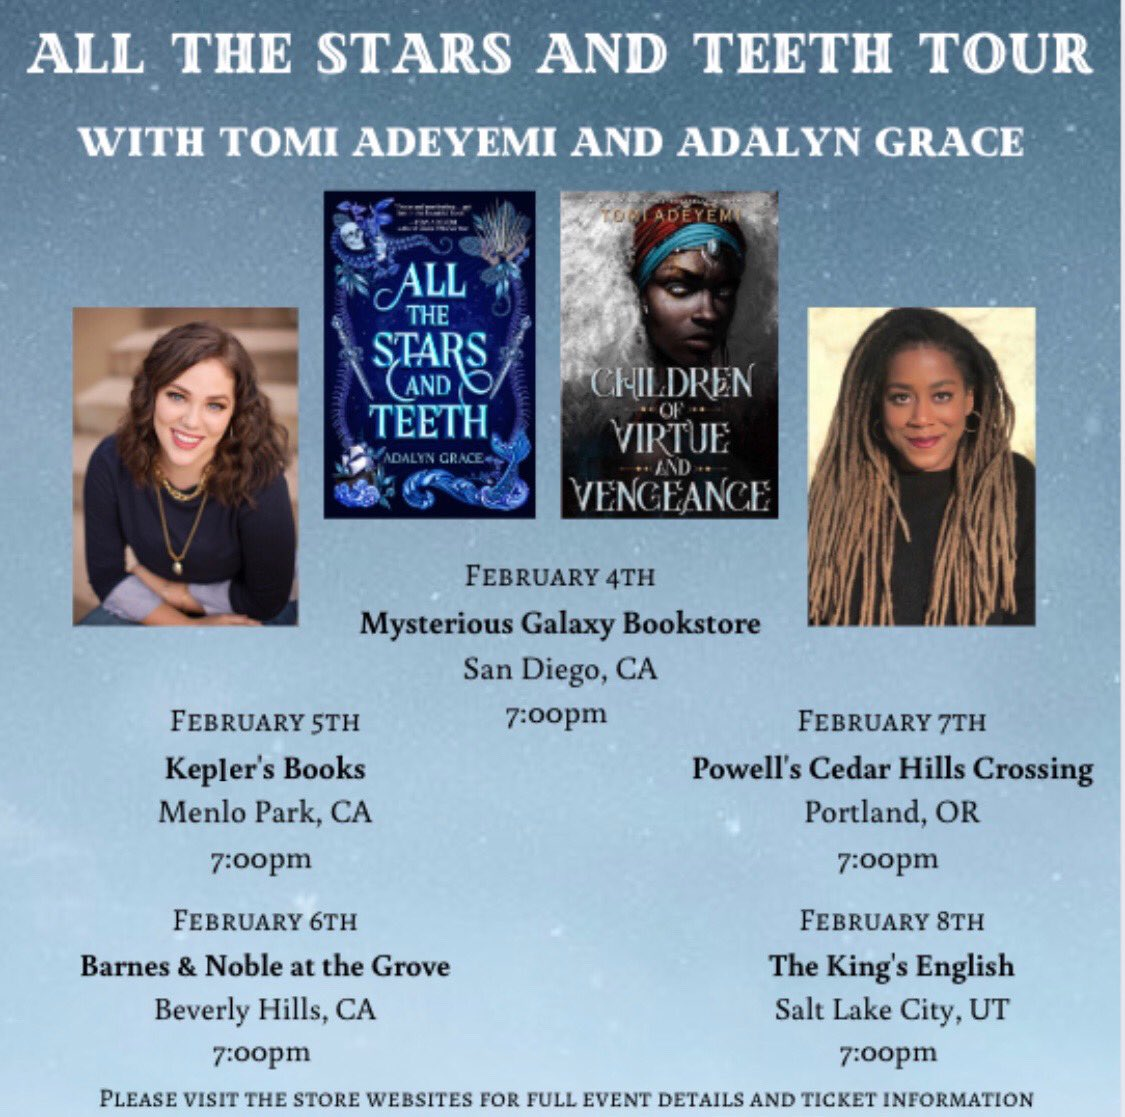 CALIFORNIA 👏🏿  PORTLAND 👏🏿  SALT LAKE CITY 👏🏿   @AdalynGrace_ AND I ARE COMING TO YOU!!!!   LINK: http://bit.ly/2KFHcEC  ME GUSHING ABOUT HOW EXCITED I AM ⬇️